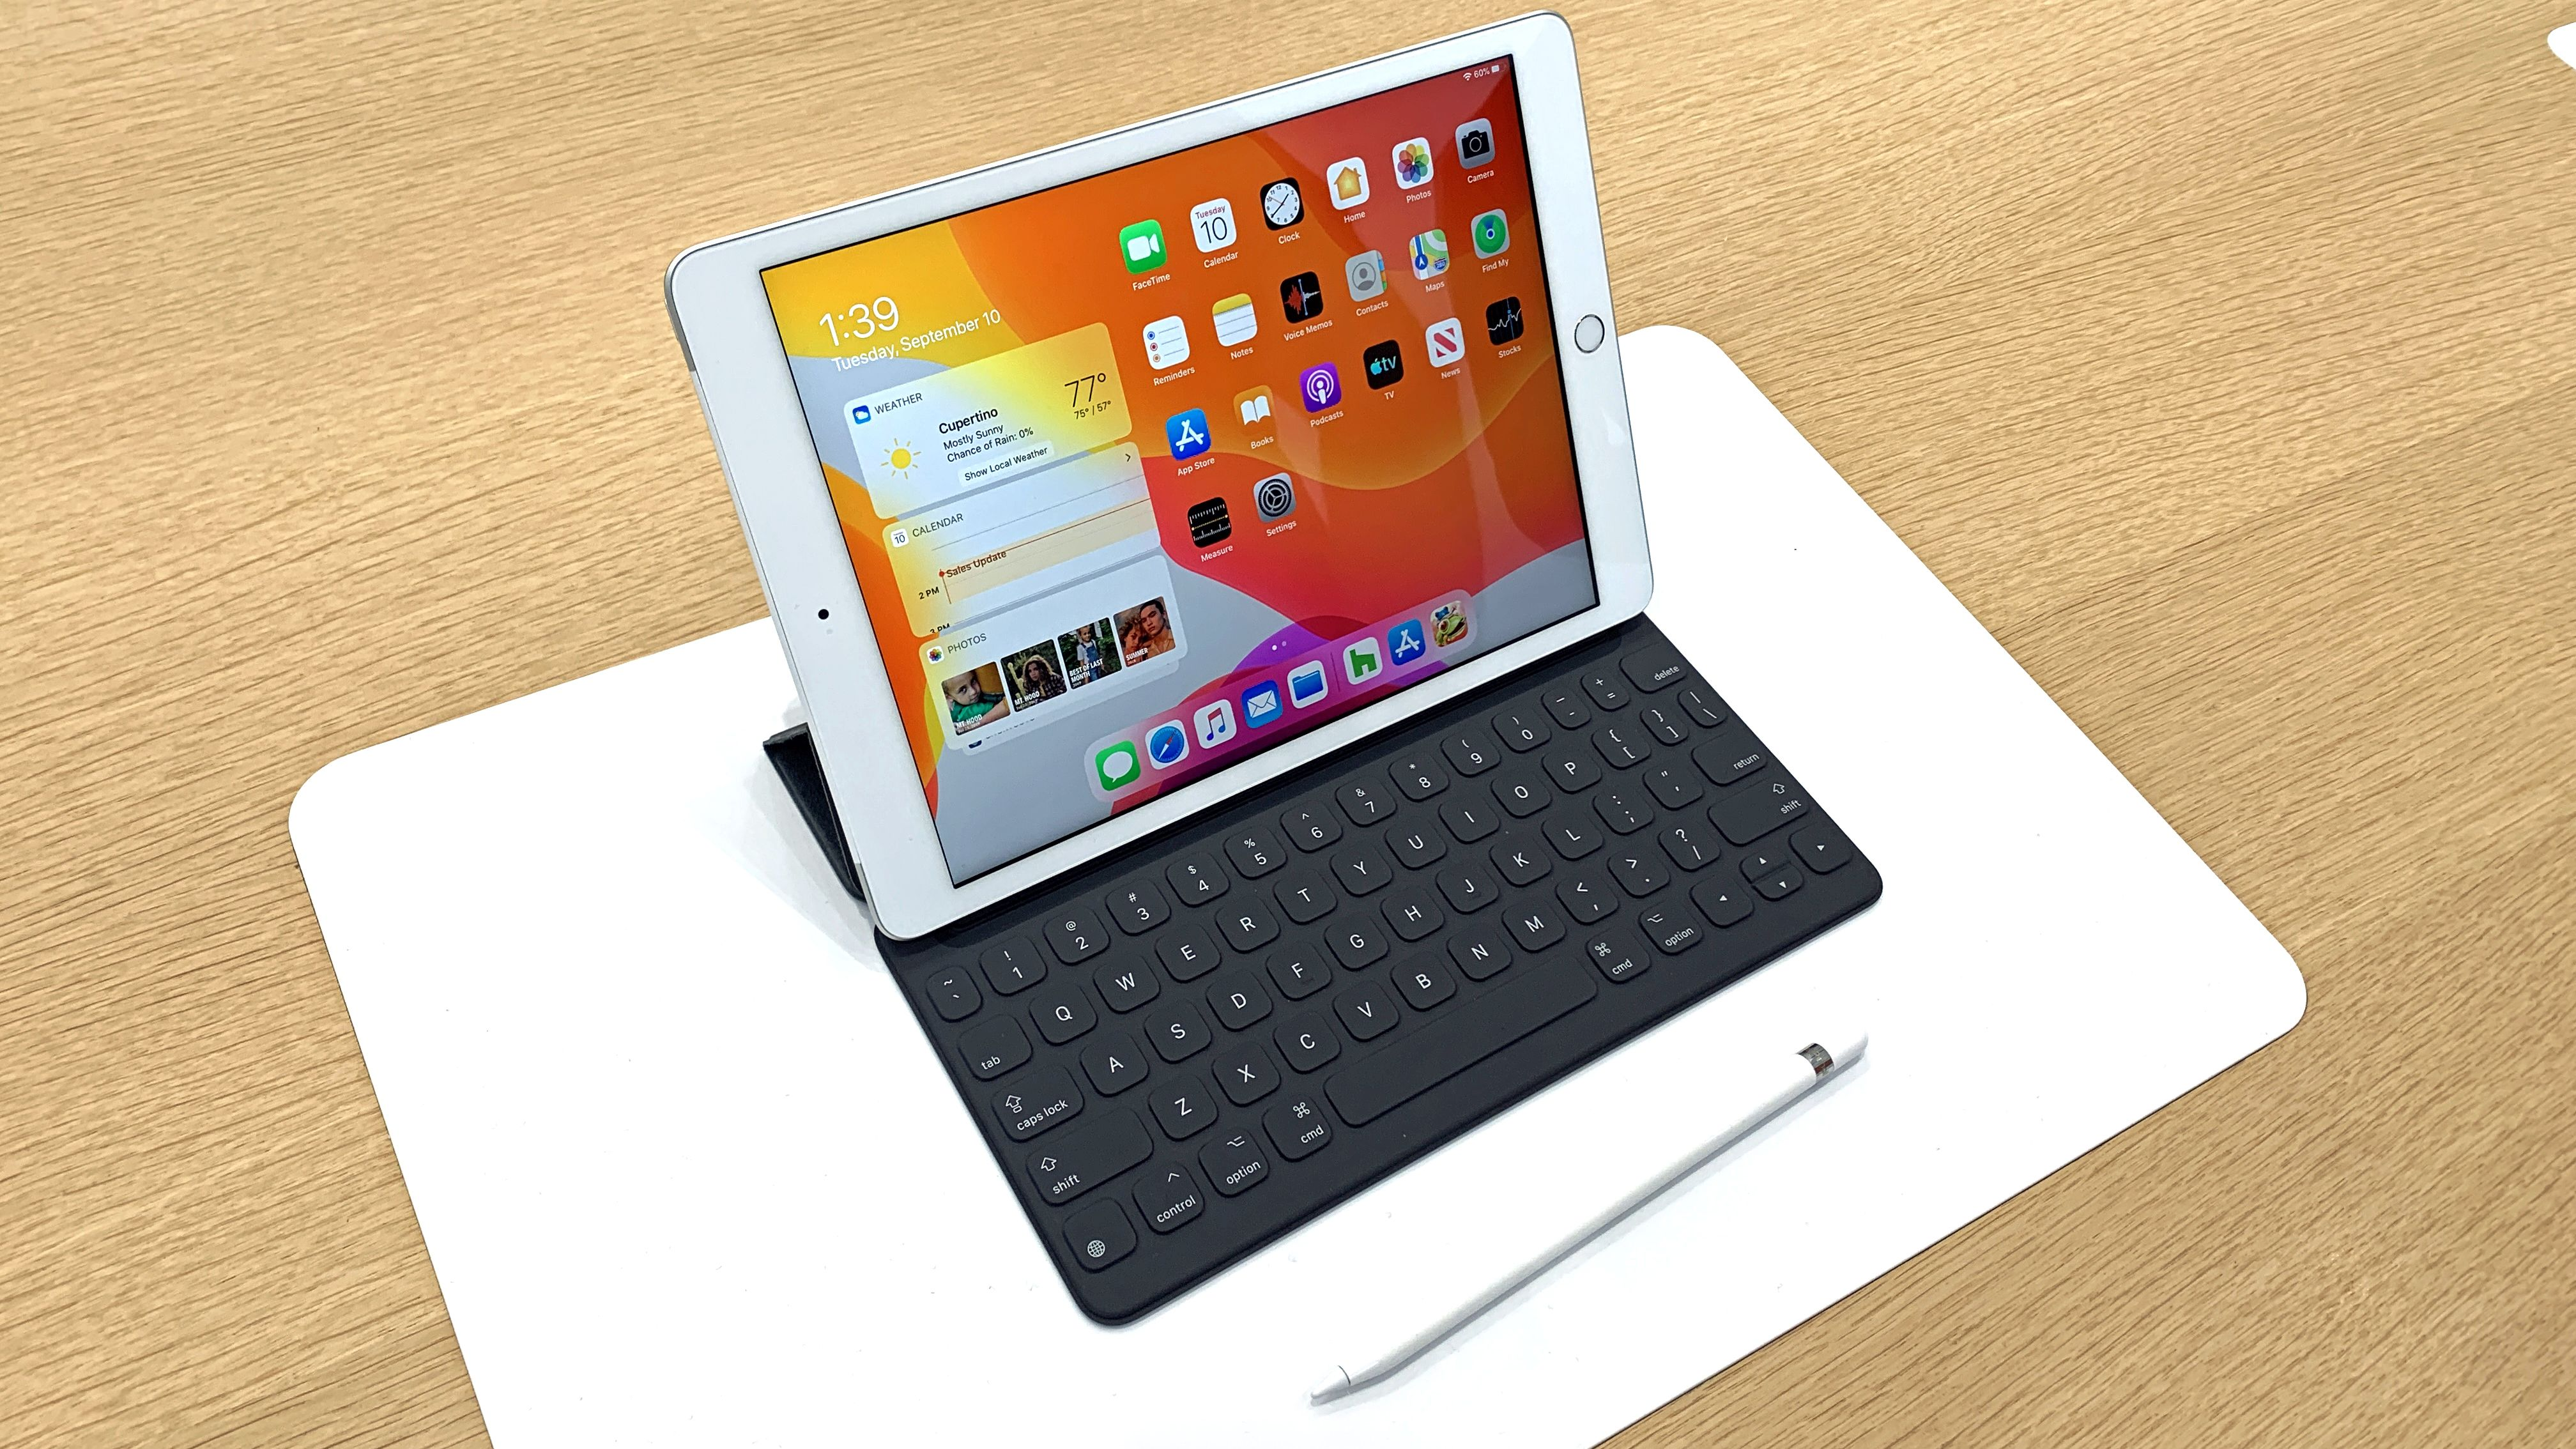 New iPad (2019) is out now at an affordable price Ipad